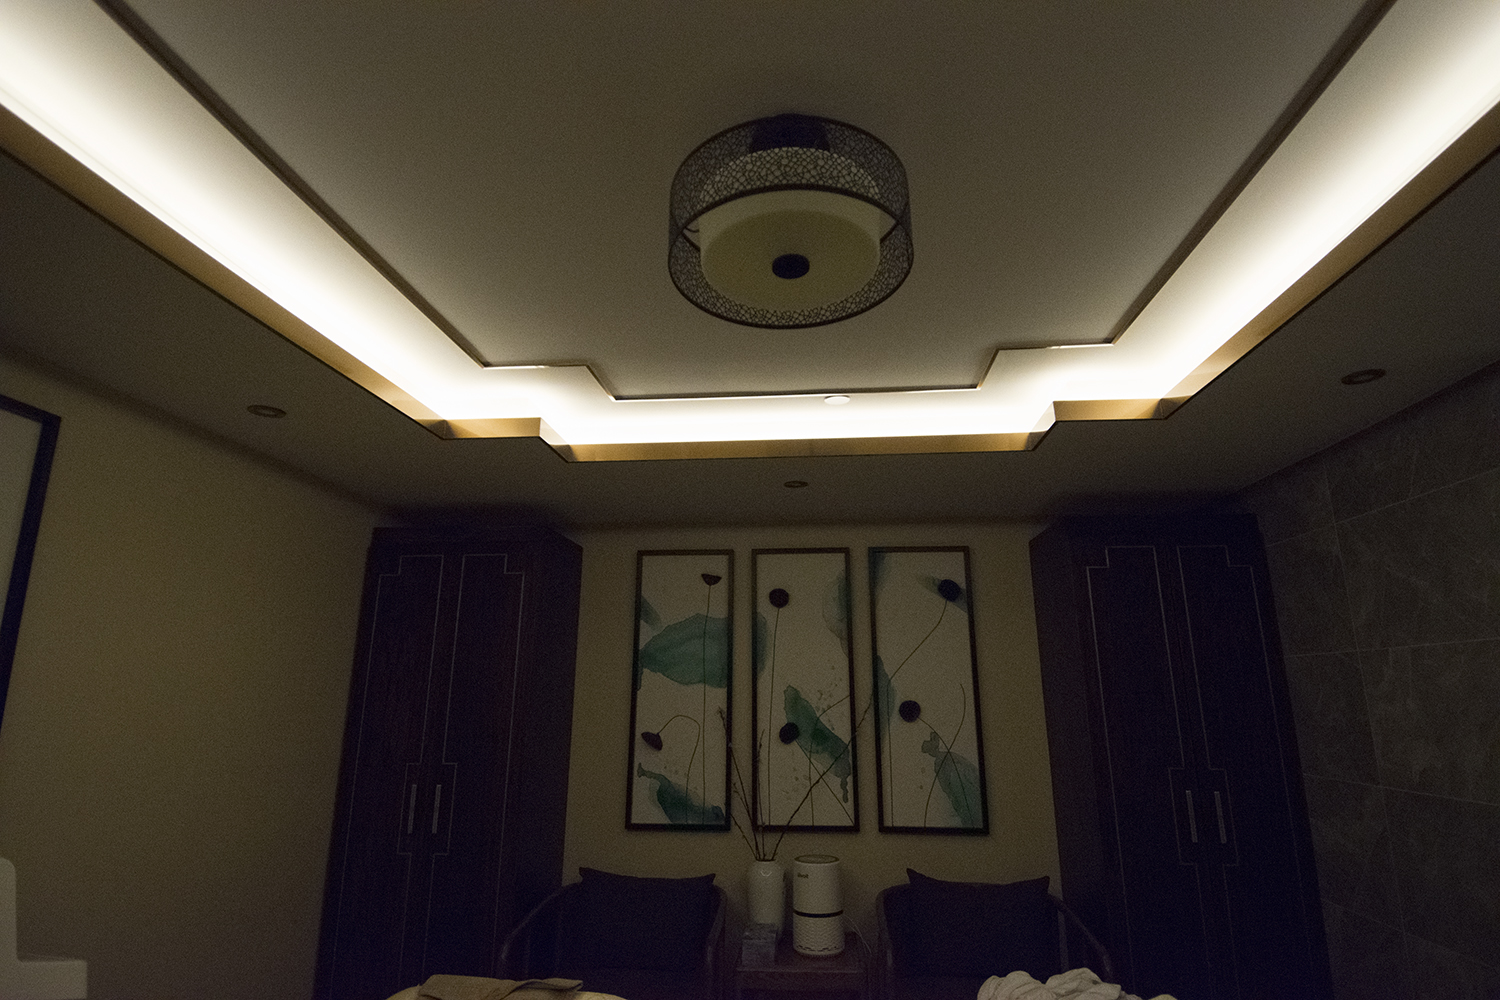 The intricately designed ceiling in one of the treatment rooms.